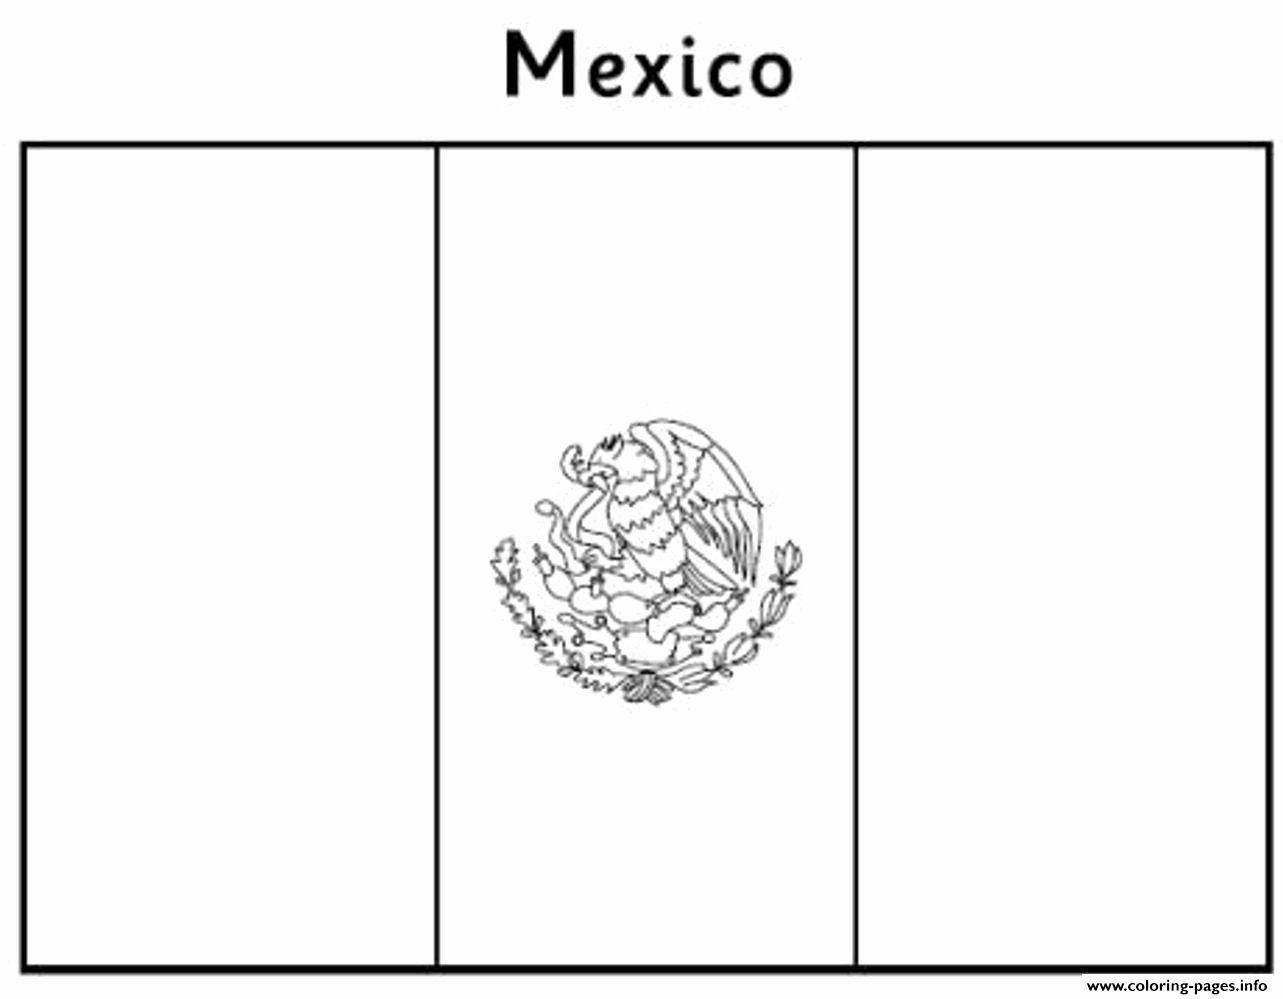 The Drawing Book For Kids Pdf Lovely Coloring Pages Mexican Flag Coloring Page Mexican Flag Coloring Pages American Flag Coloring Page World Map Coloring Page